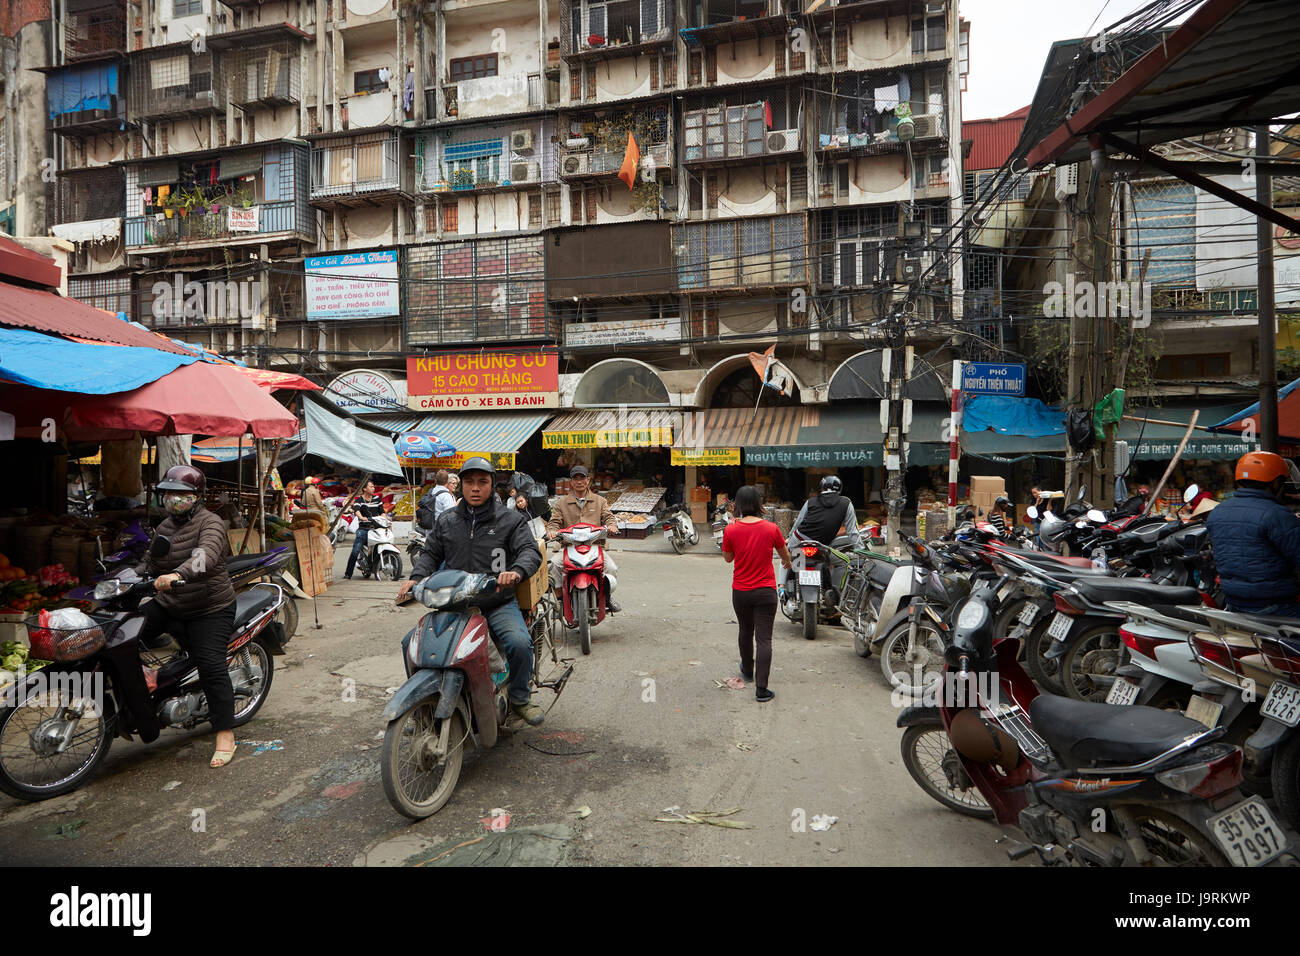 Motorbikes and apartments by Dong Xuan Market, Old Quarter, Hanoi, Vietnam Stock Photo